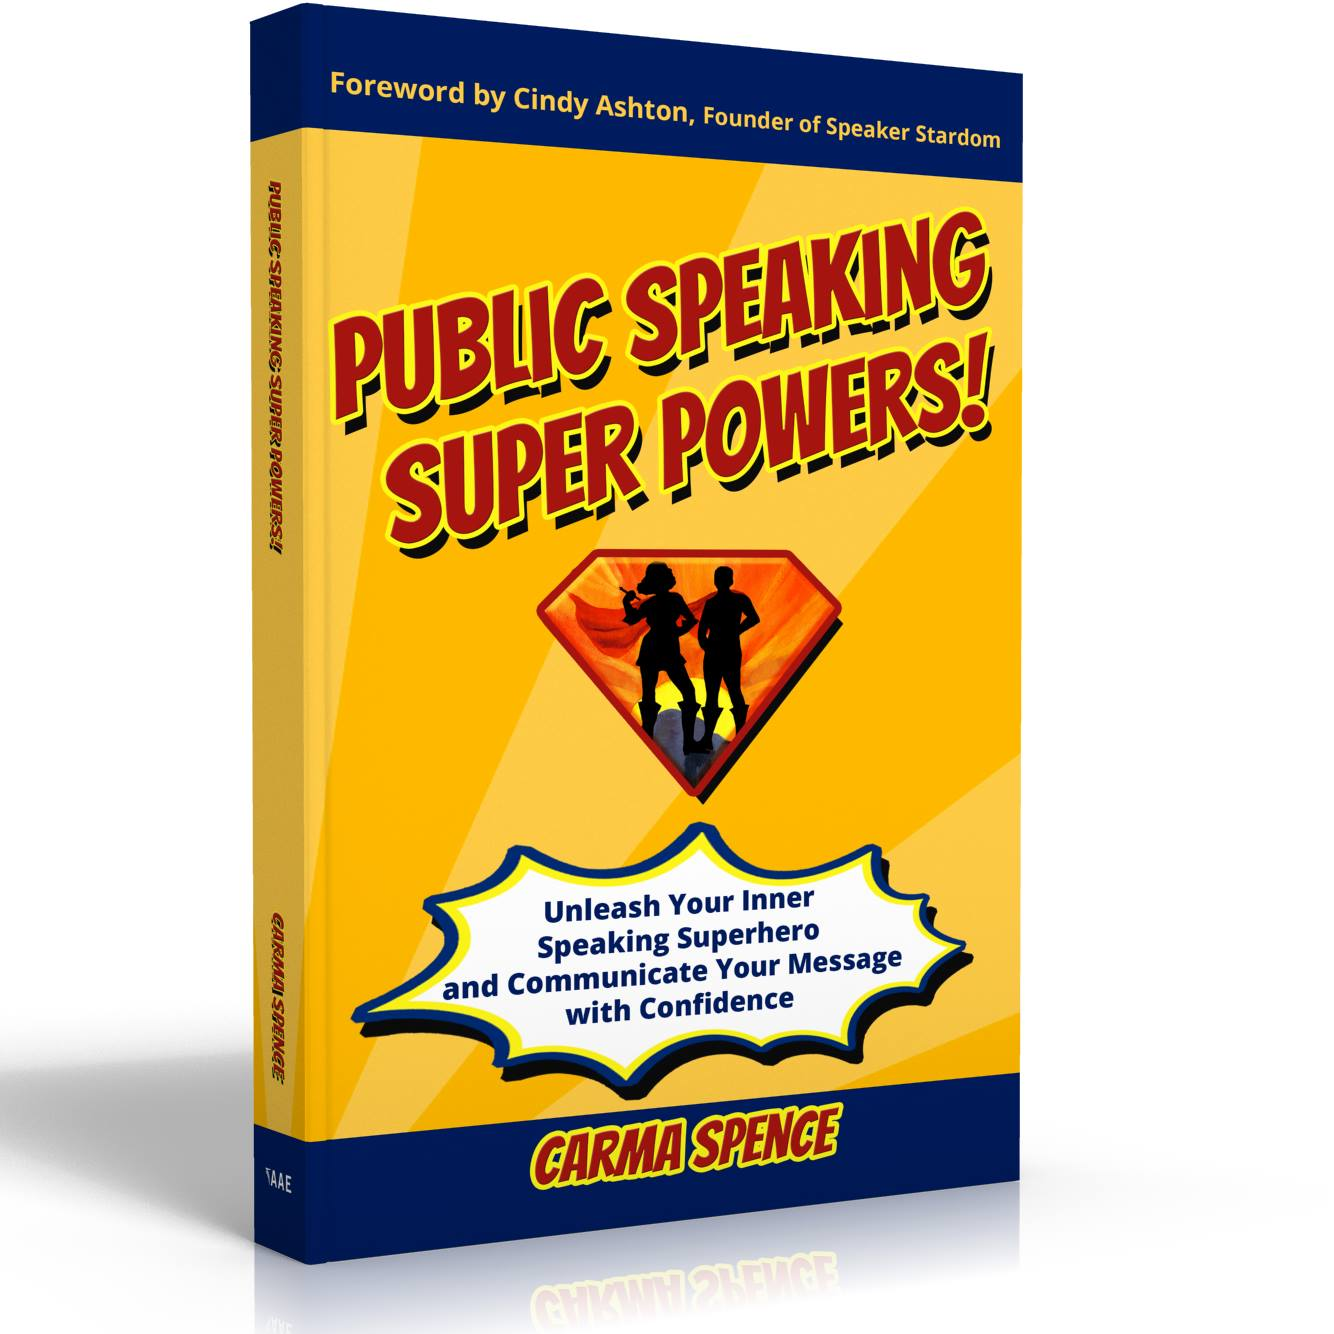 Public Speaking Super Powers Book Cover